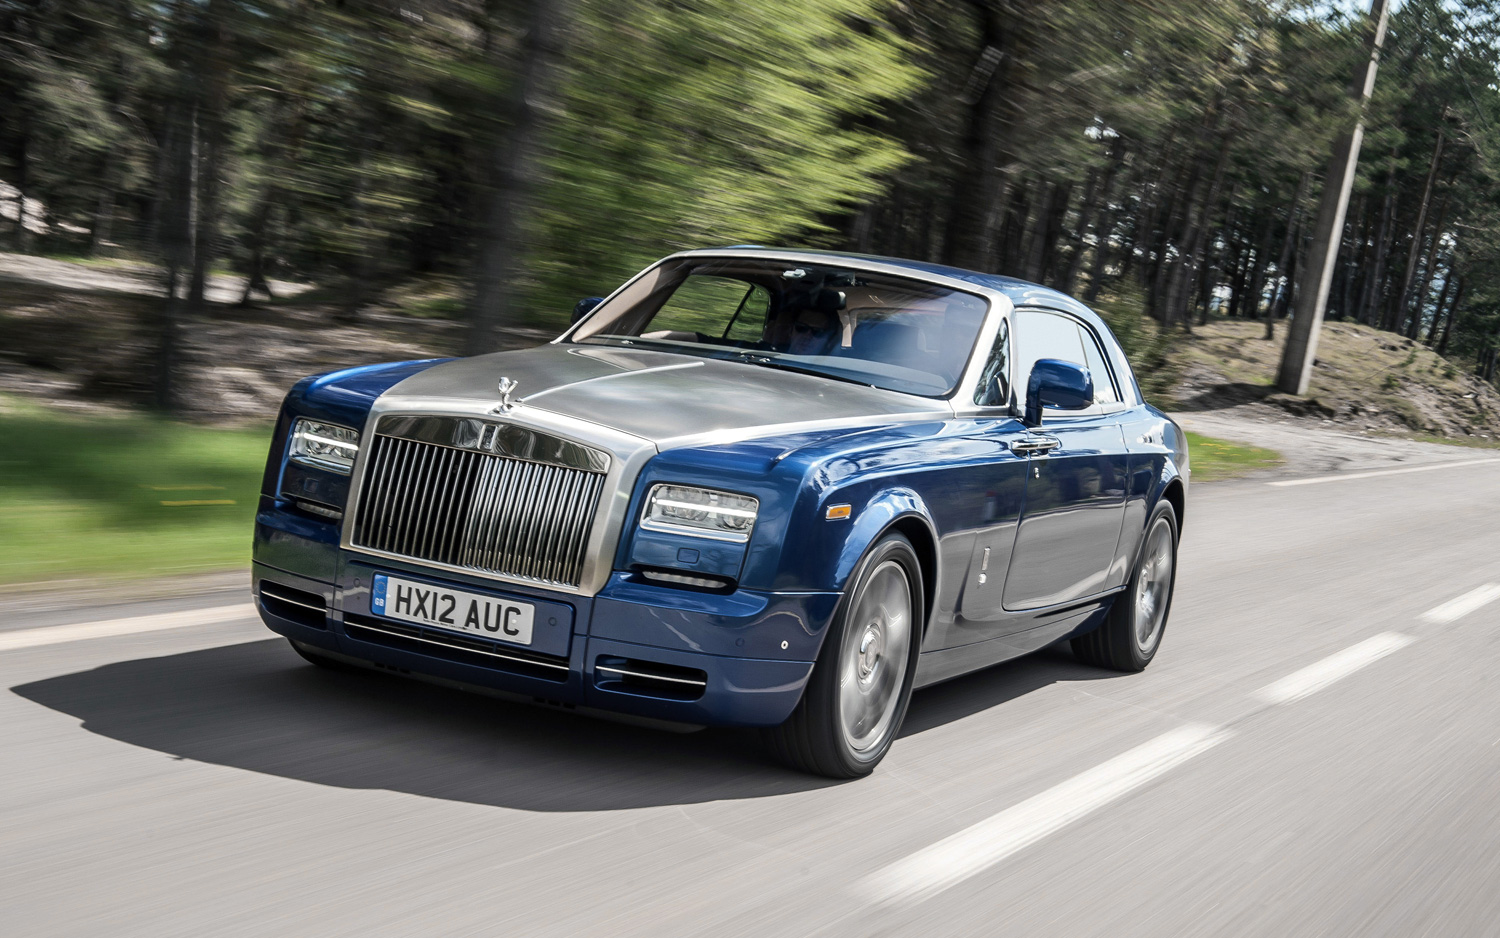 Rolls Royce Phantom wallpapers Rolls Royce Phantom pictures